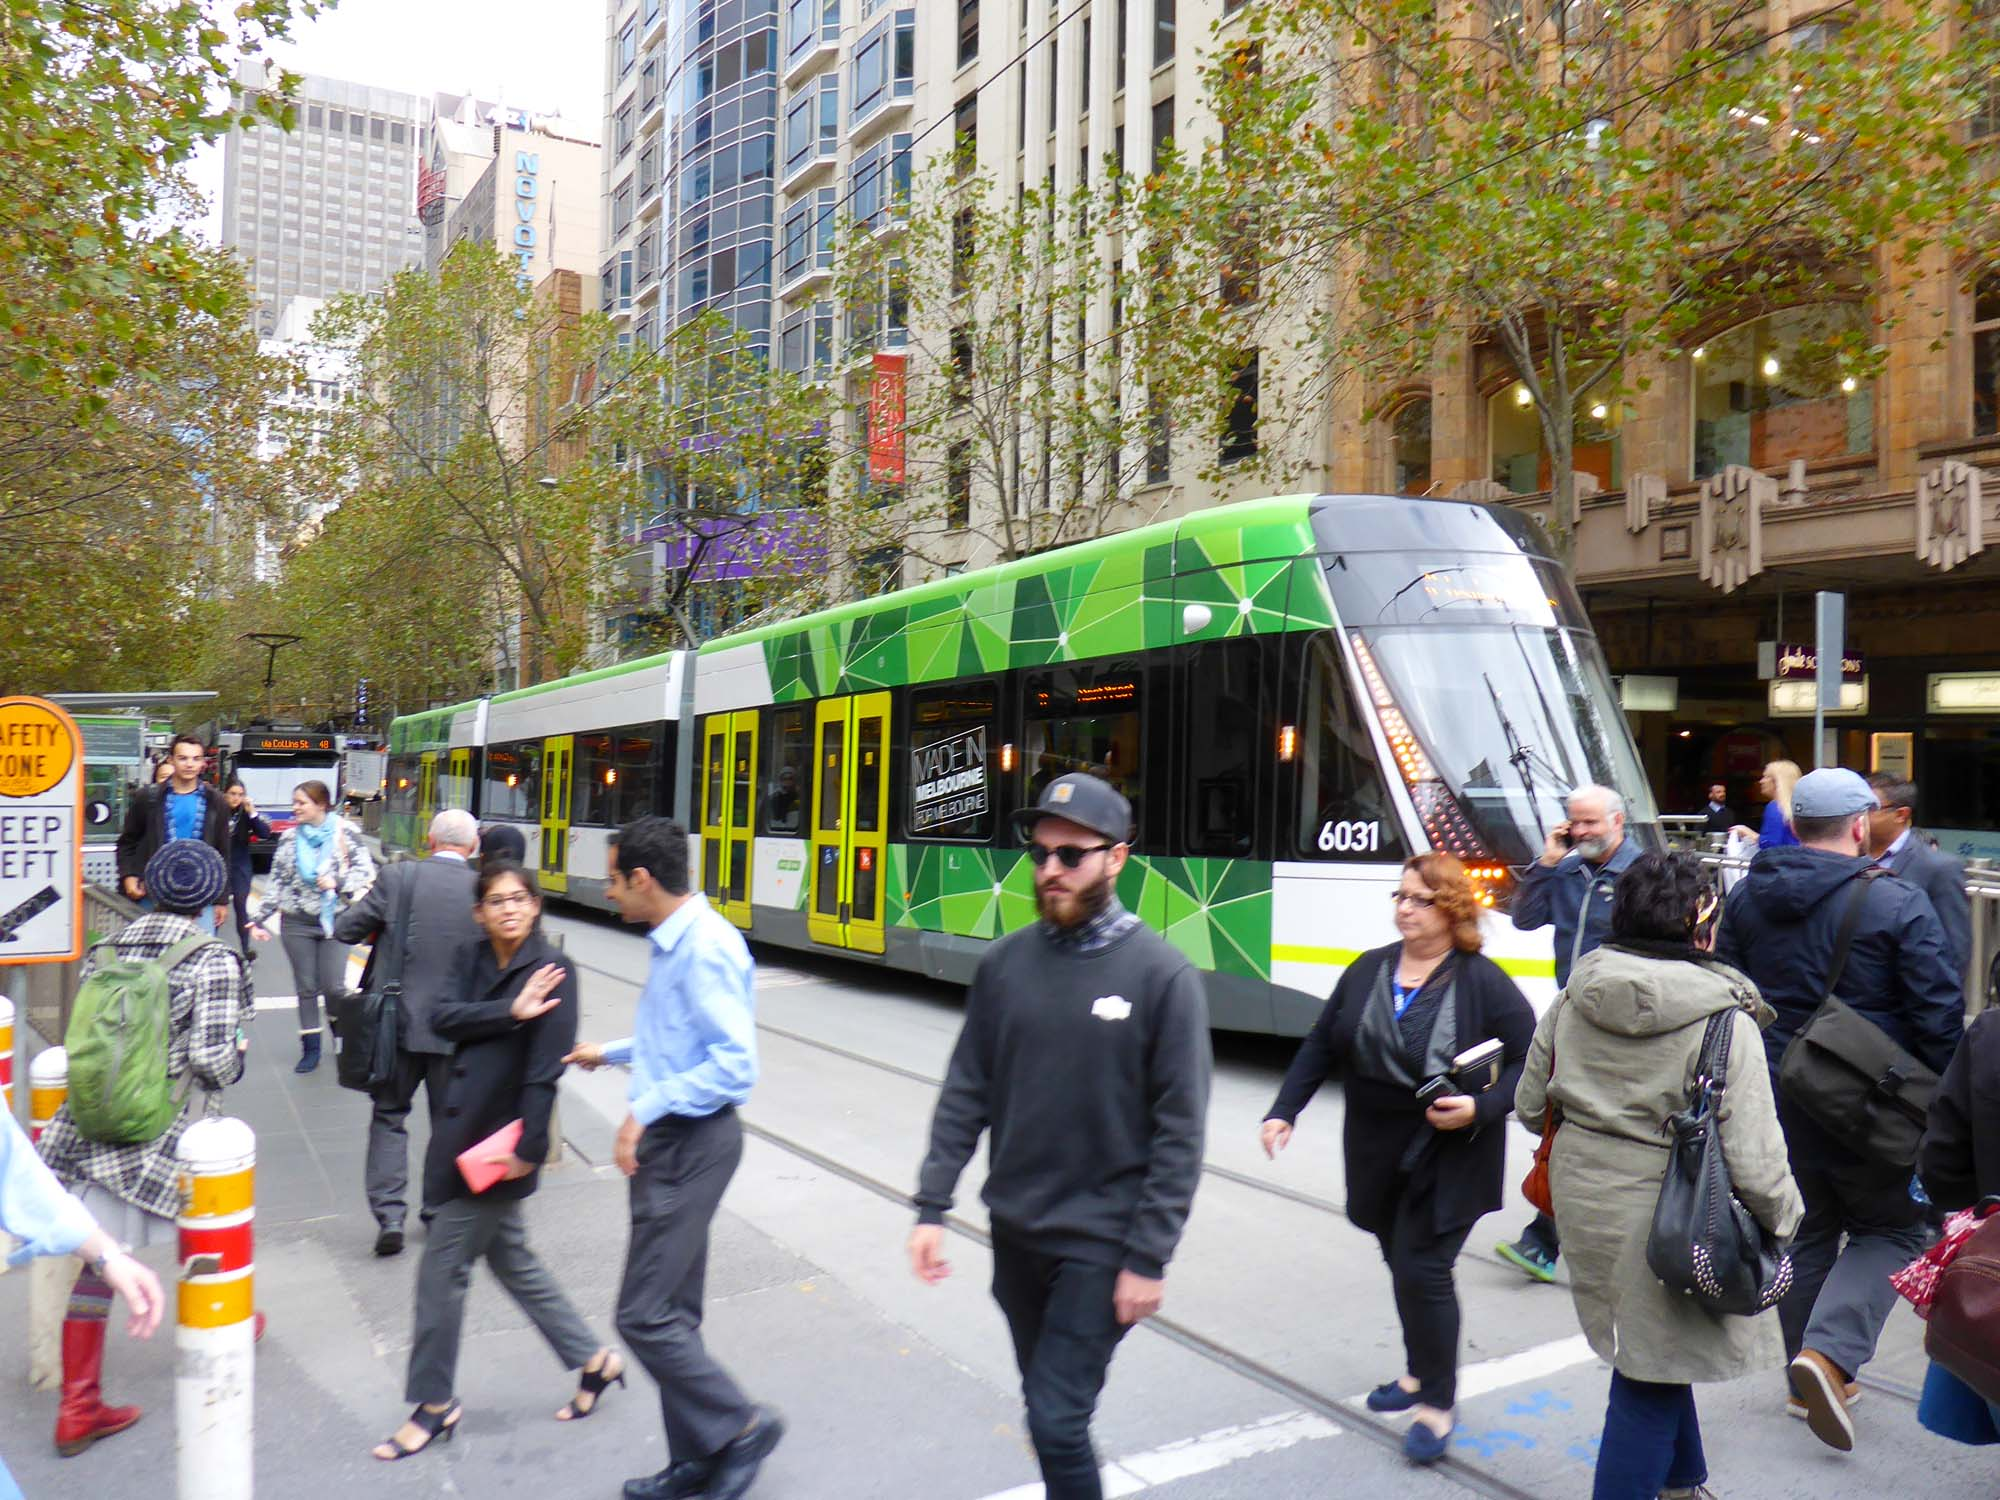 A Melbourne commuters' tram